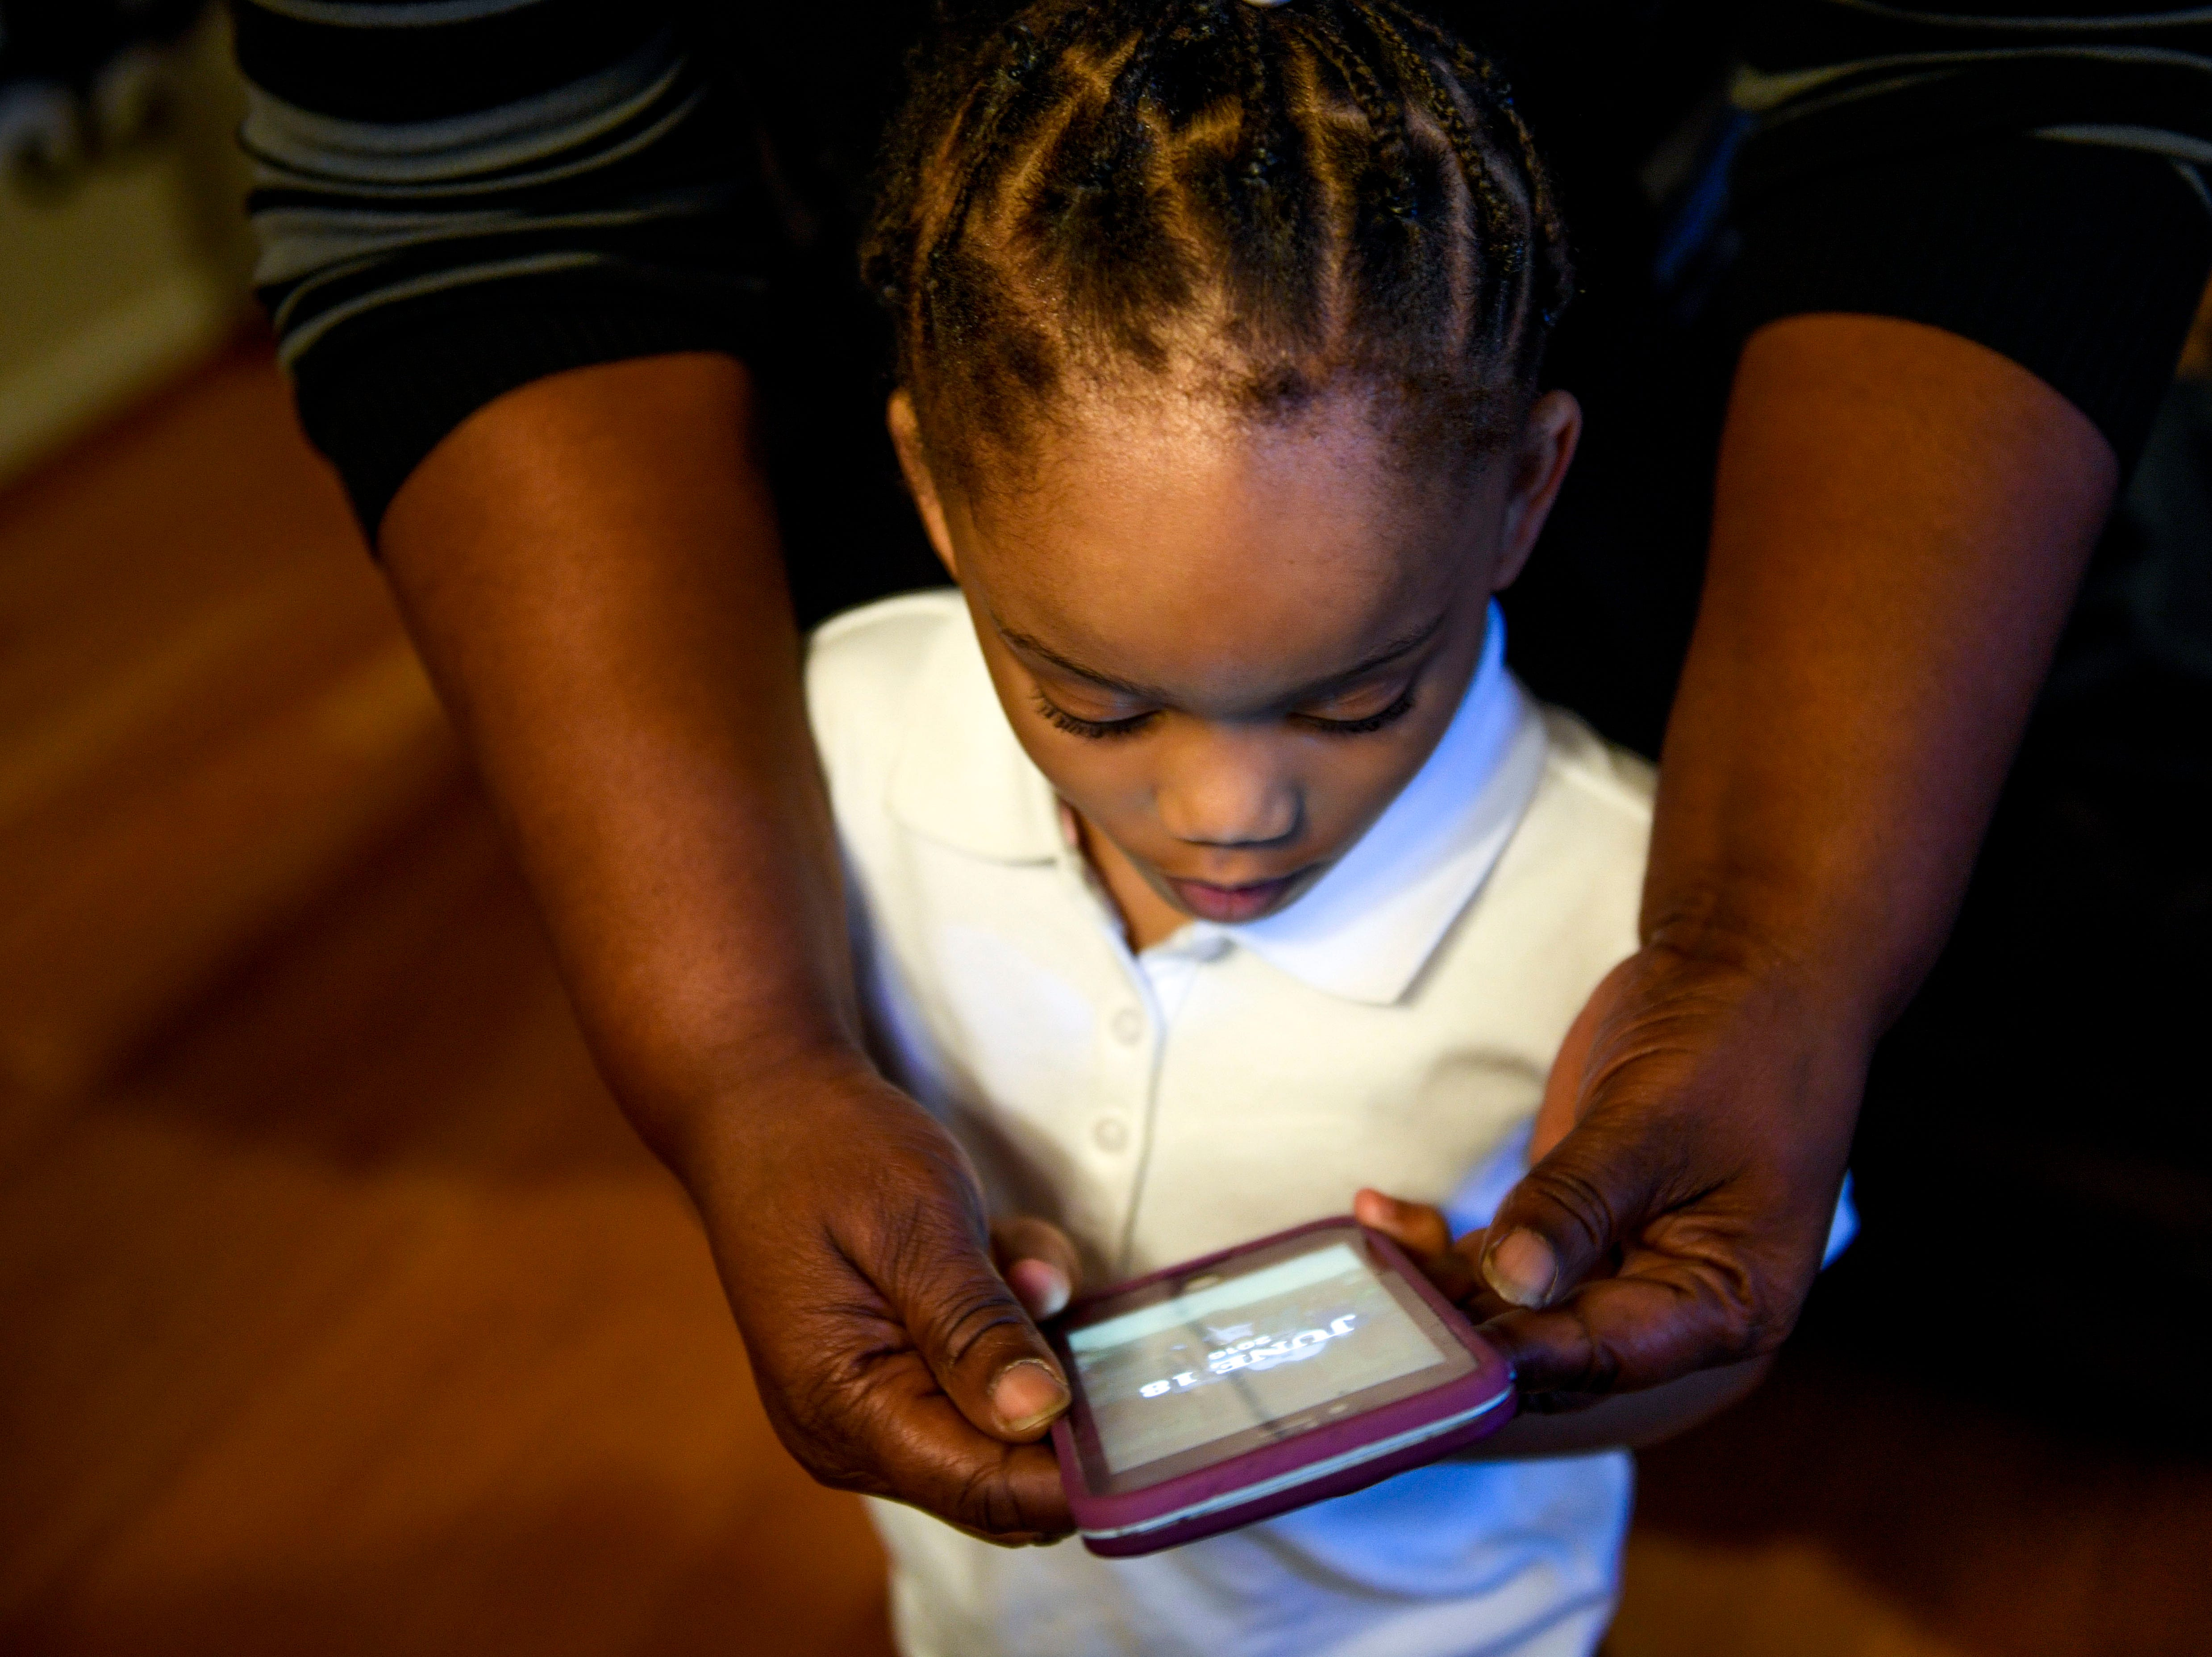 Jaliyah Allen, 4, is helped with a cell phone by Martha Epperson at the home of Martha Epperson in Jackson, Tenn., on Wednesday, Nov. 7, 2018.